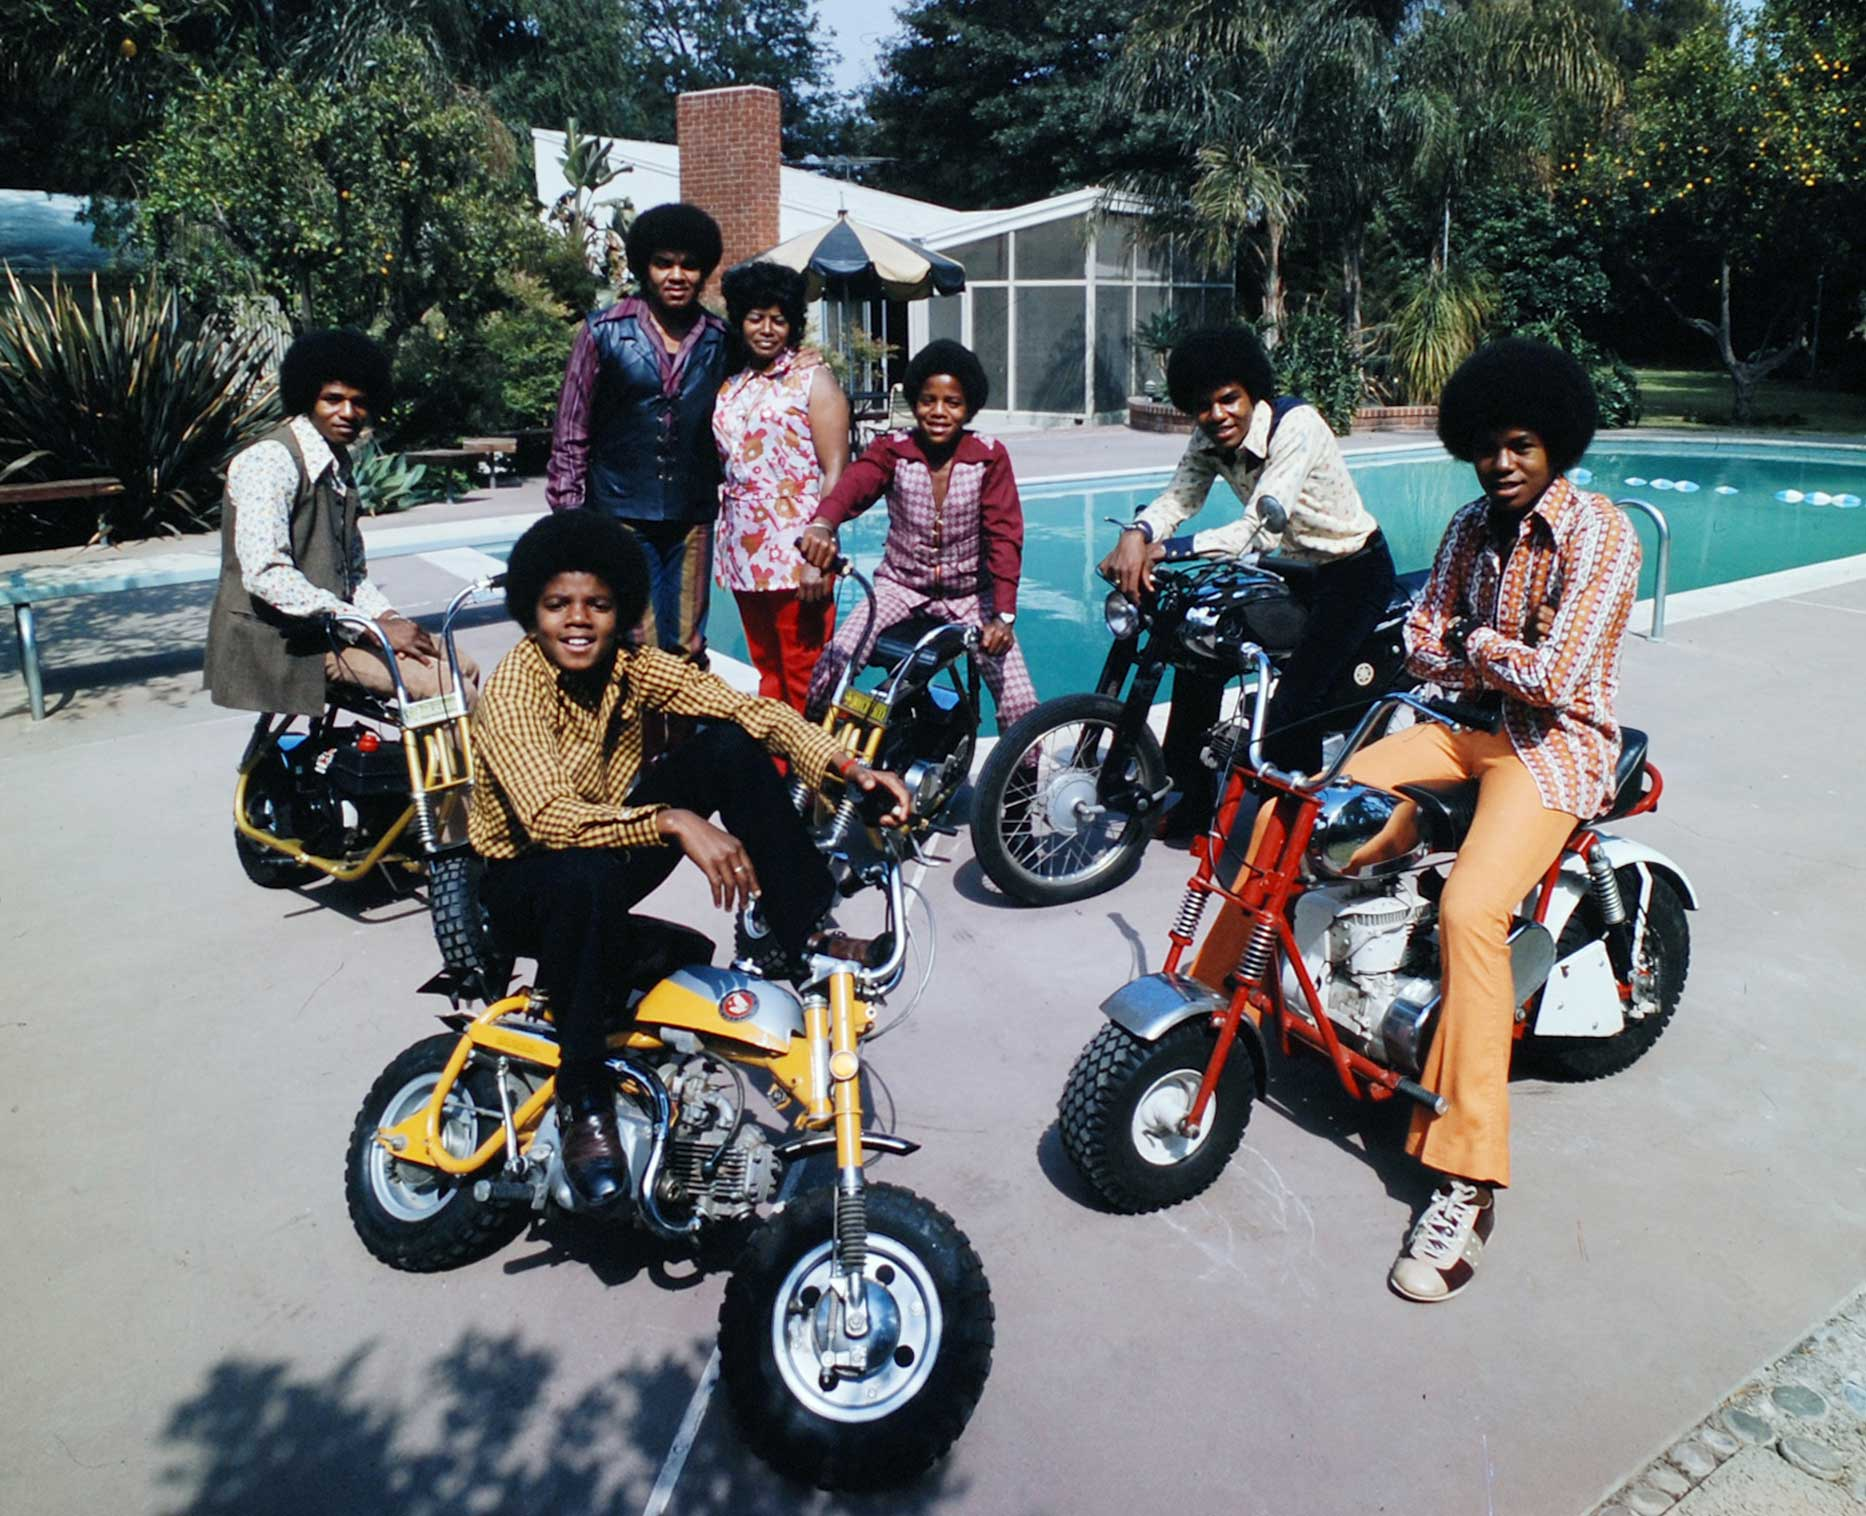 With their parents standing by, 13-year-old dynamo Michael (front left) and his brothers Jackie, Marlon, Tito and Jermaine straddle their motorbikes by the pool, 1970.